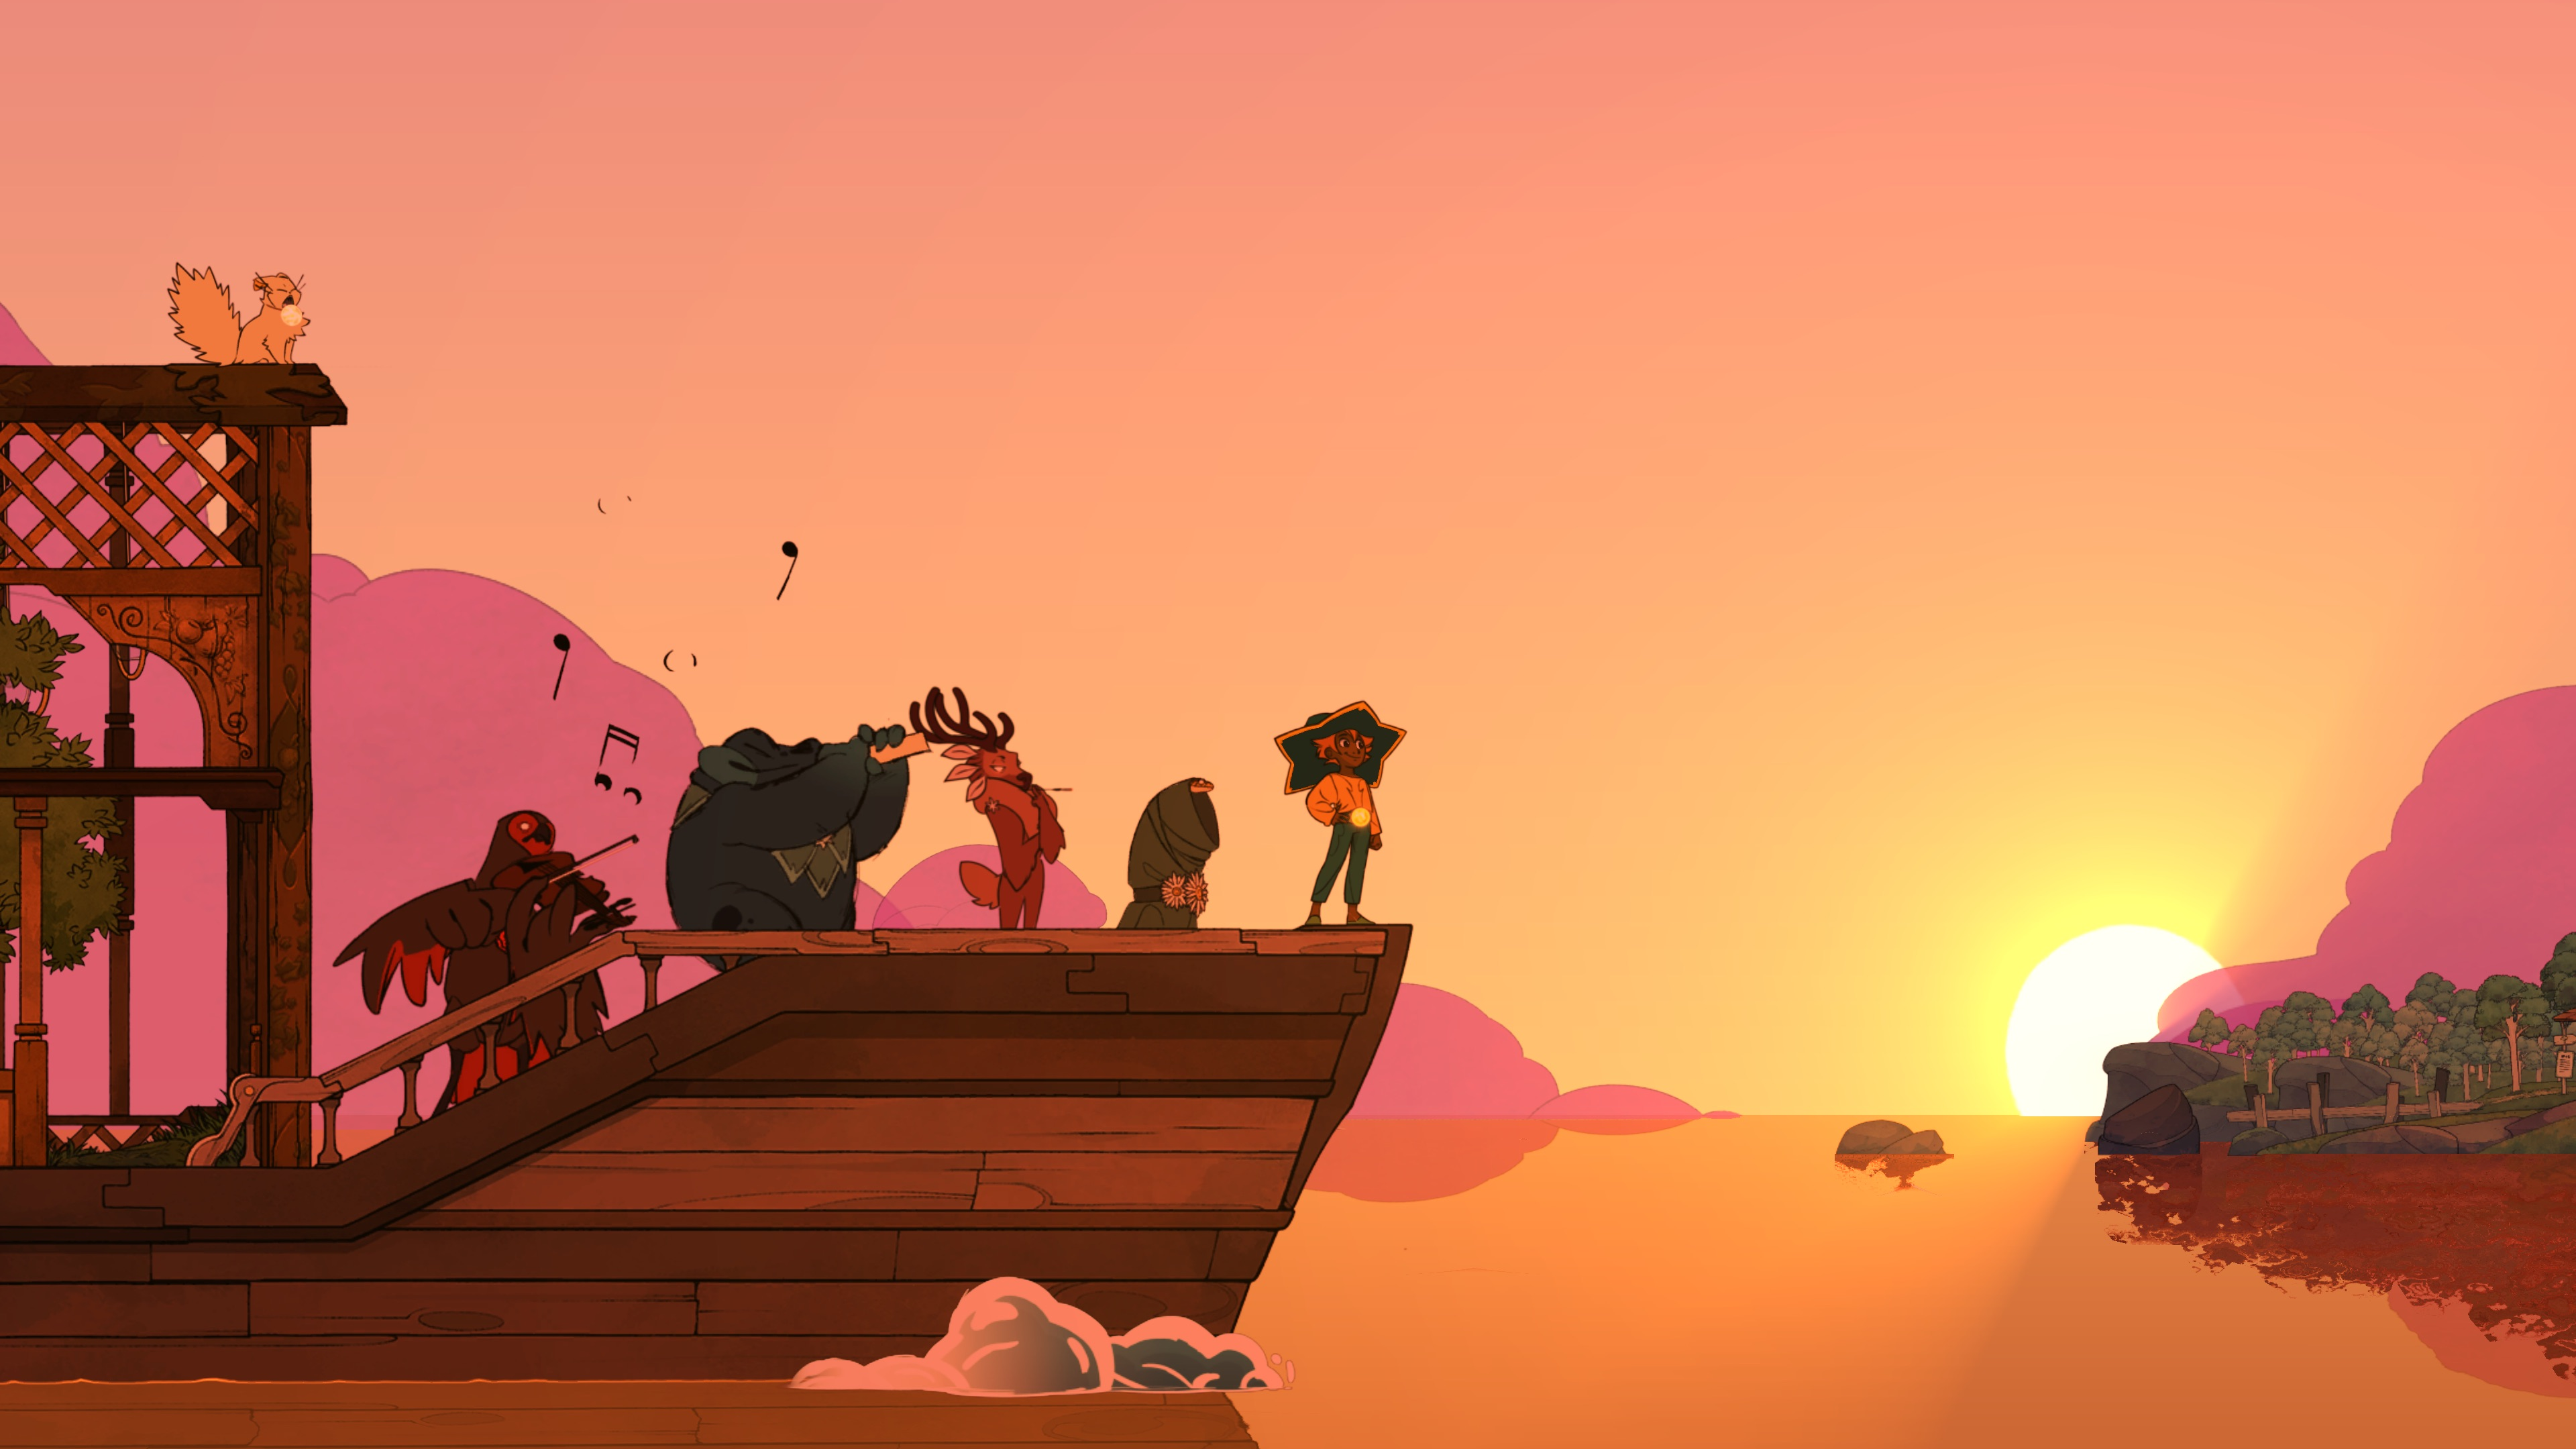 animated characters on a boat look at the sun setting in the distance in Spiritfarer